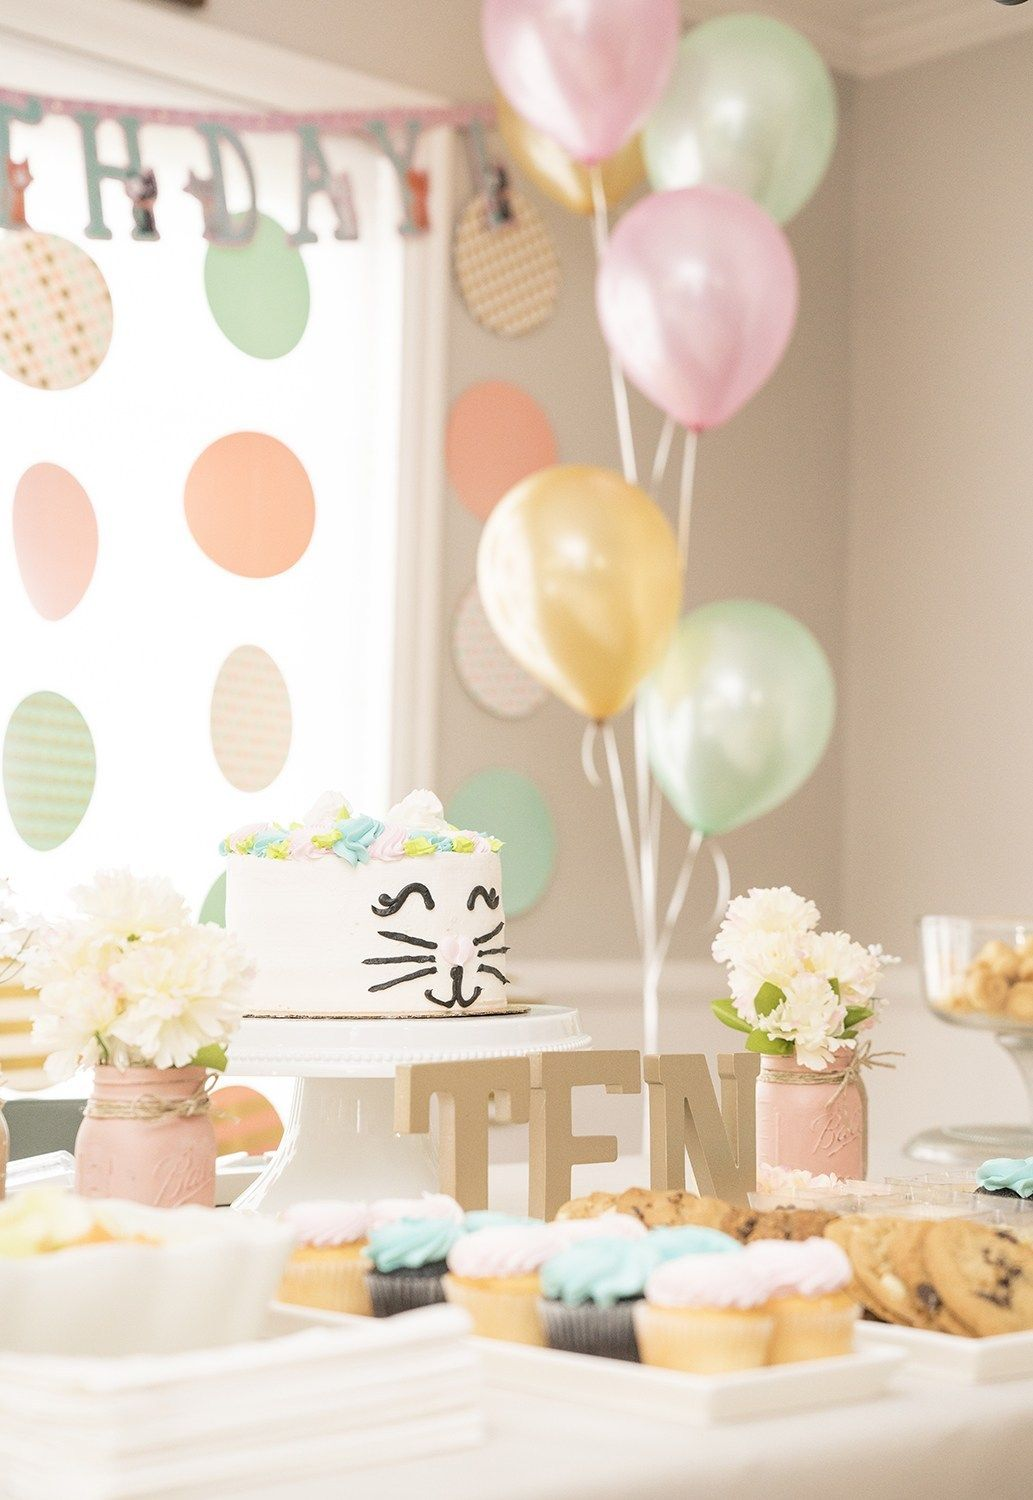 Girls 10th Birthday Party Ideas Birthday Party Table Decorations Birthday Decorations Kids 10th Birthday Parties